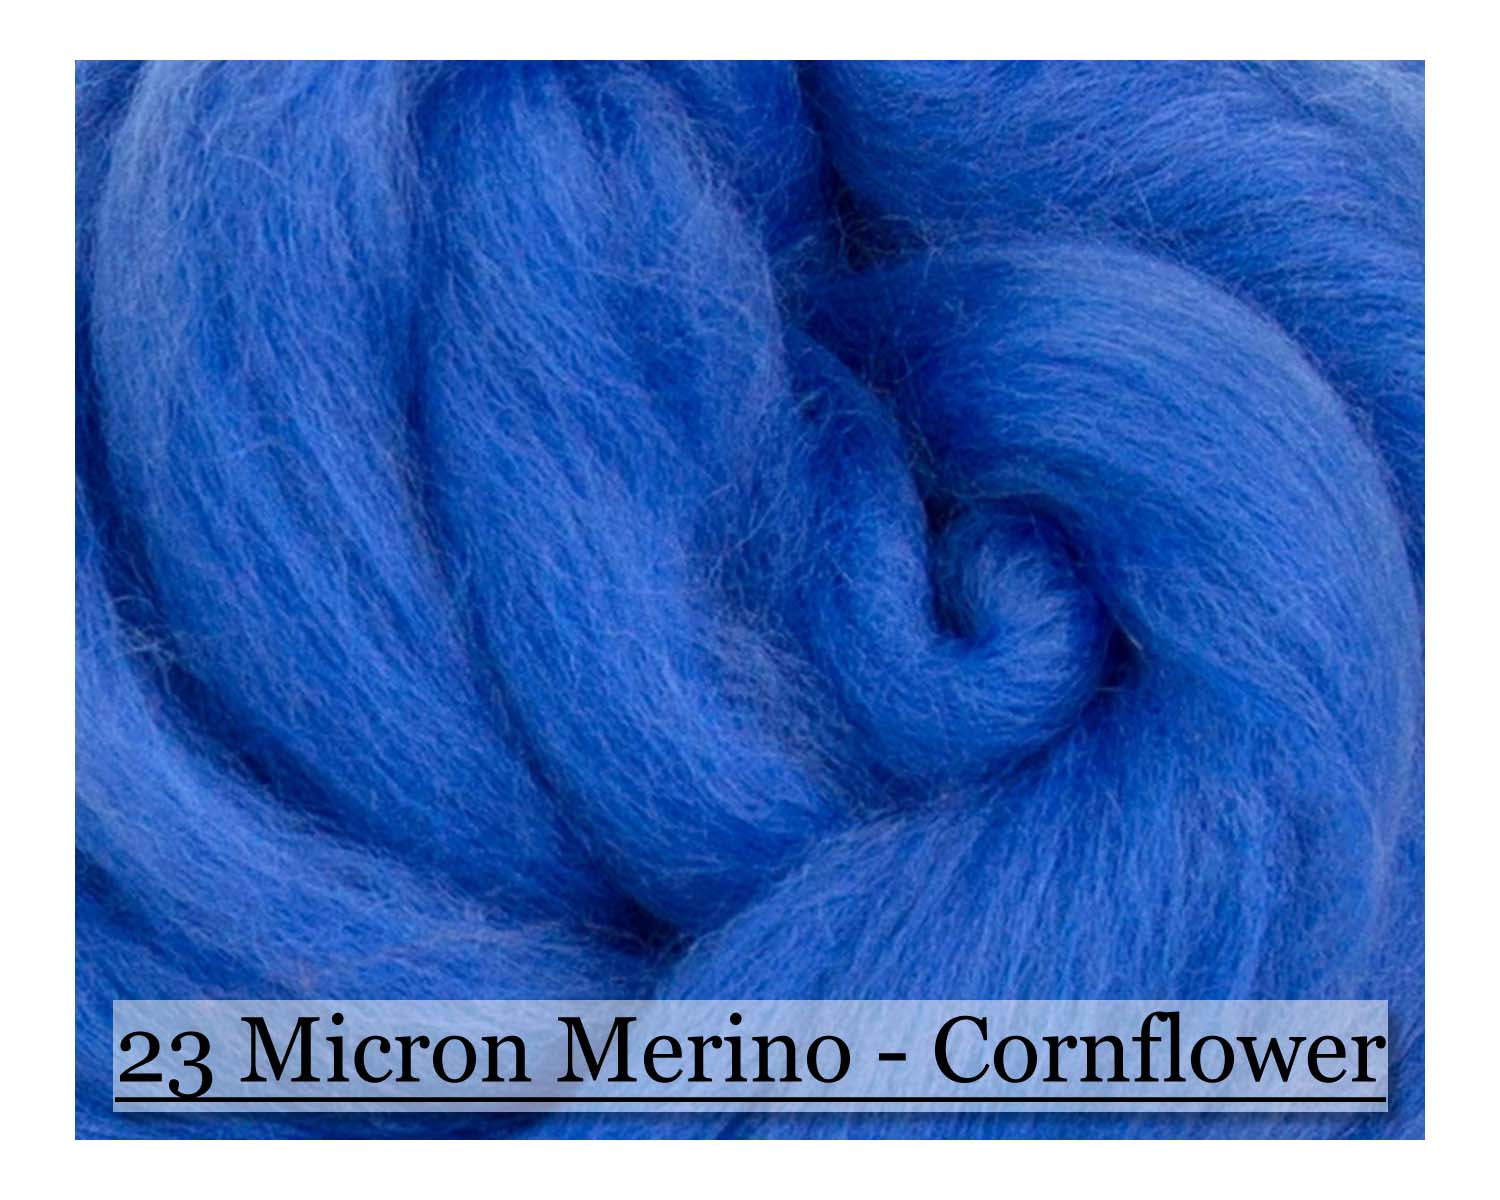 CornFlower -  Merino Wool Top - 23 Micron